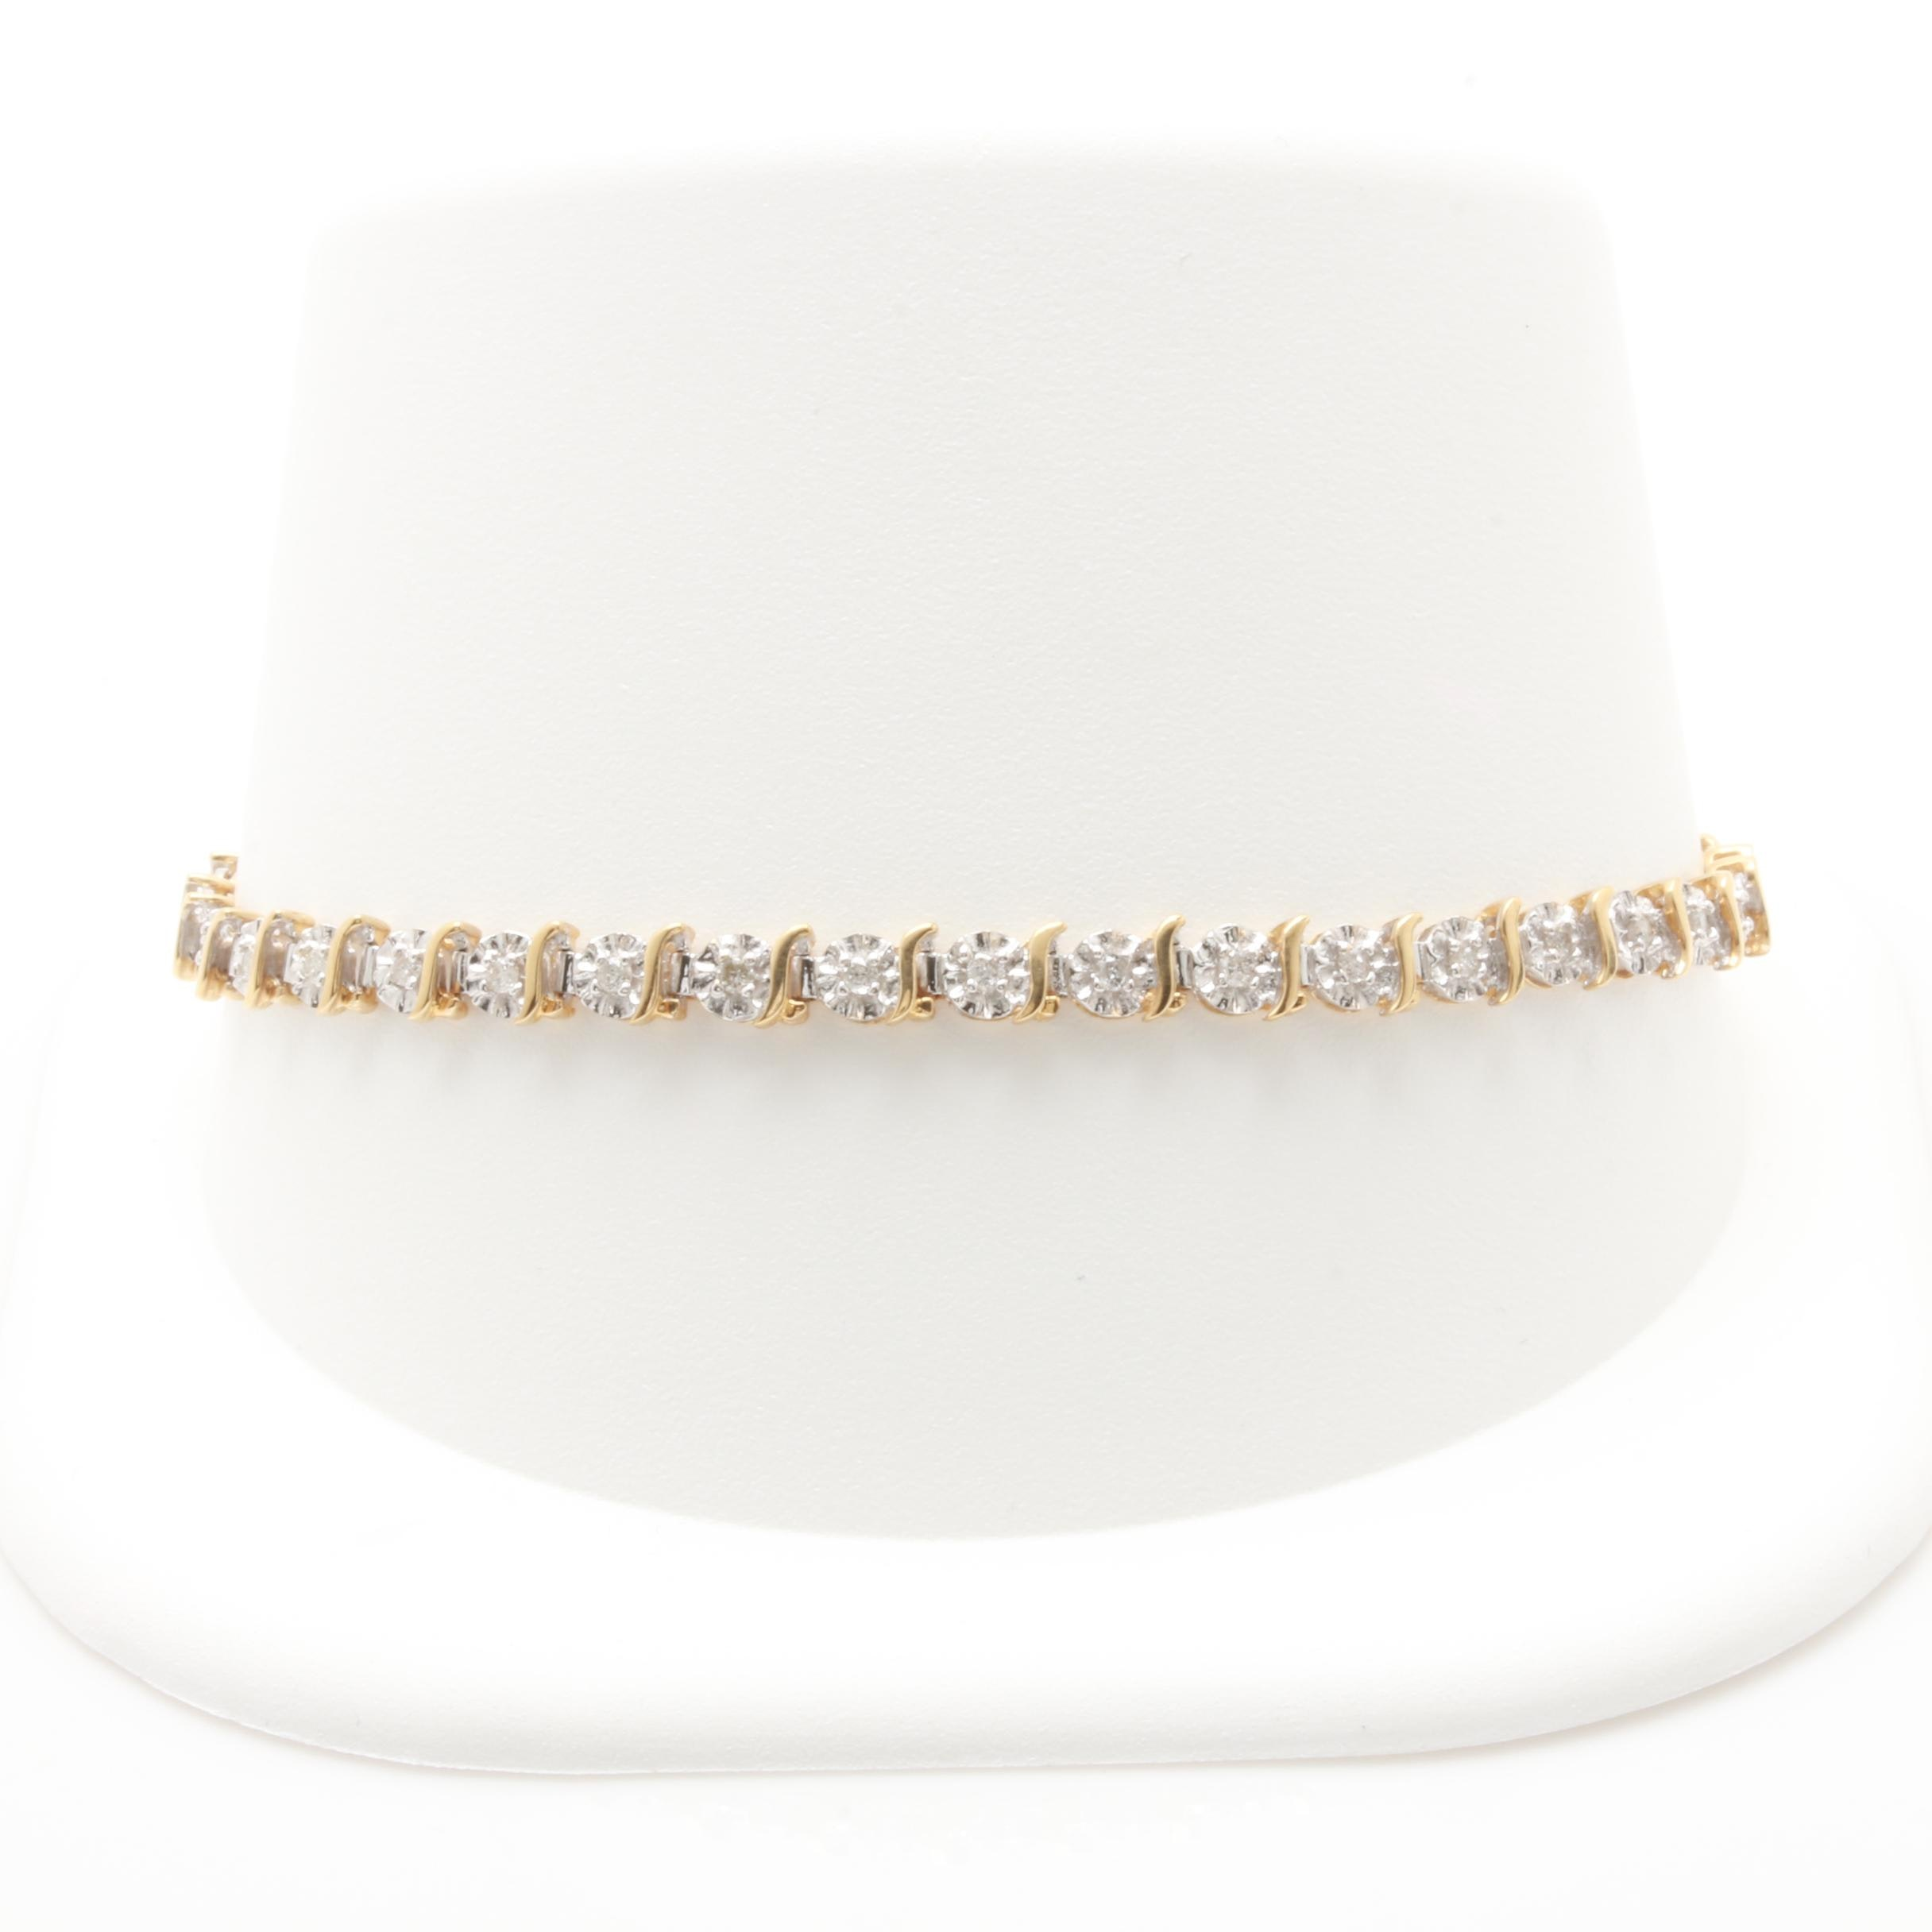 10K Yellow and White Gold Diamond Bracelet